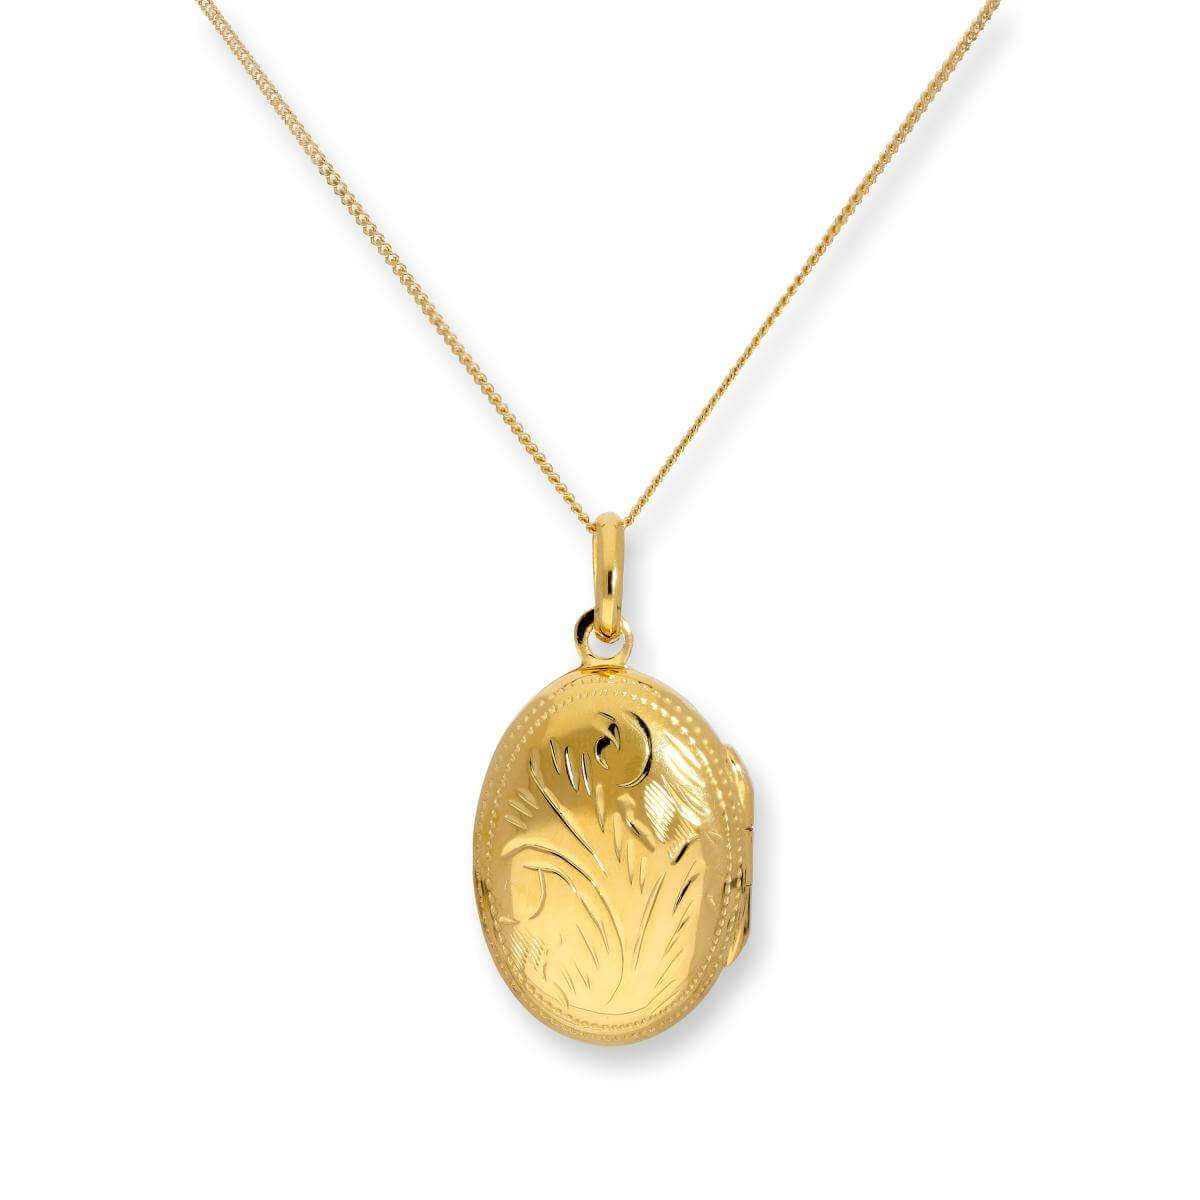 Gold Dipped Sterling Silver Oval Engraved Locket on Chain 16 - 22 Inches